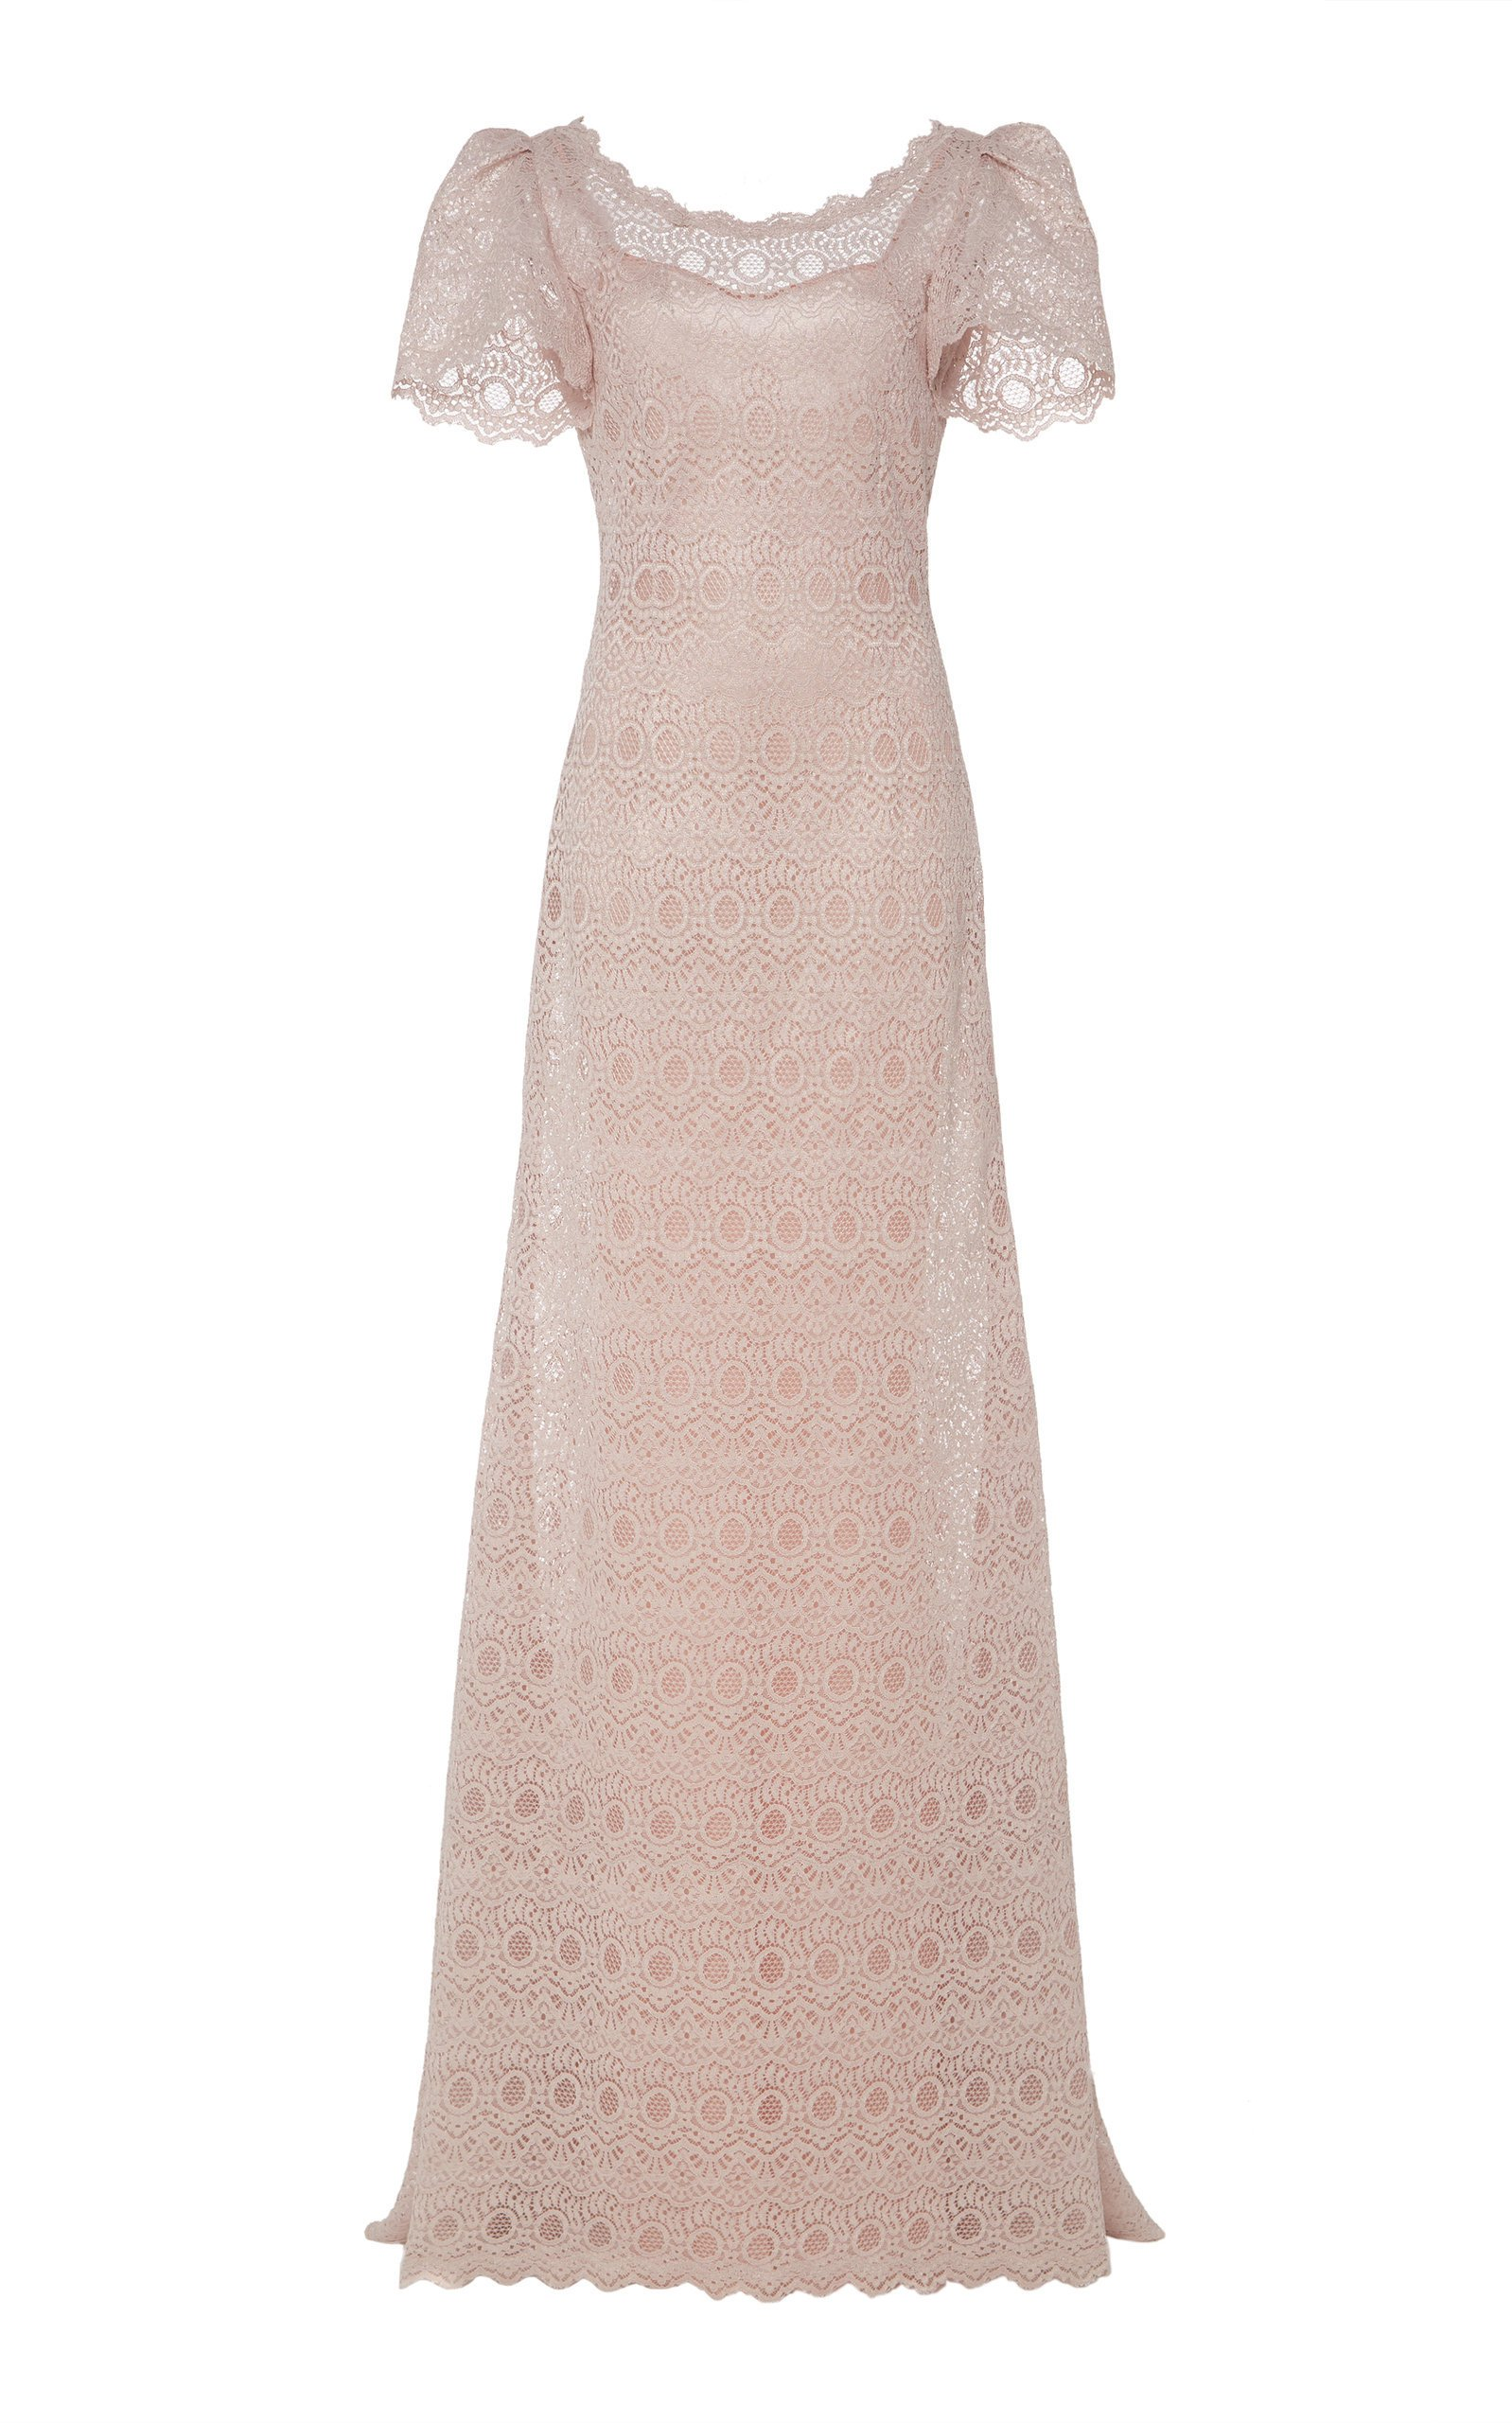 Luisa Beccaria Lace Gown